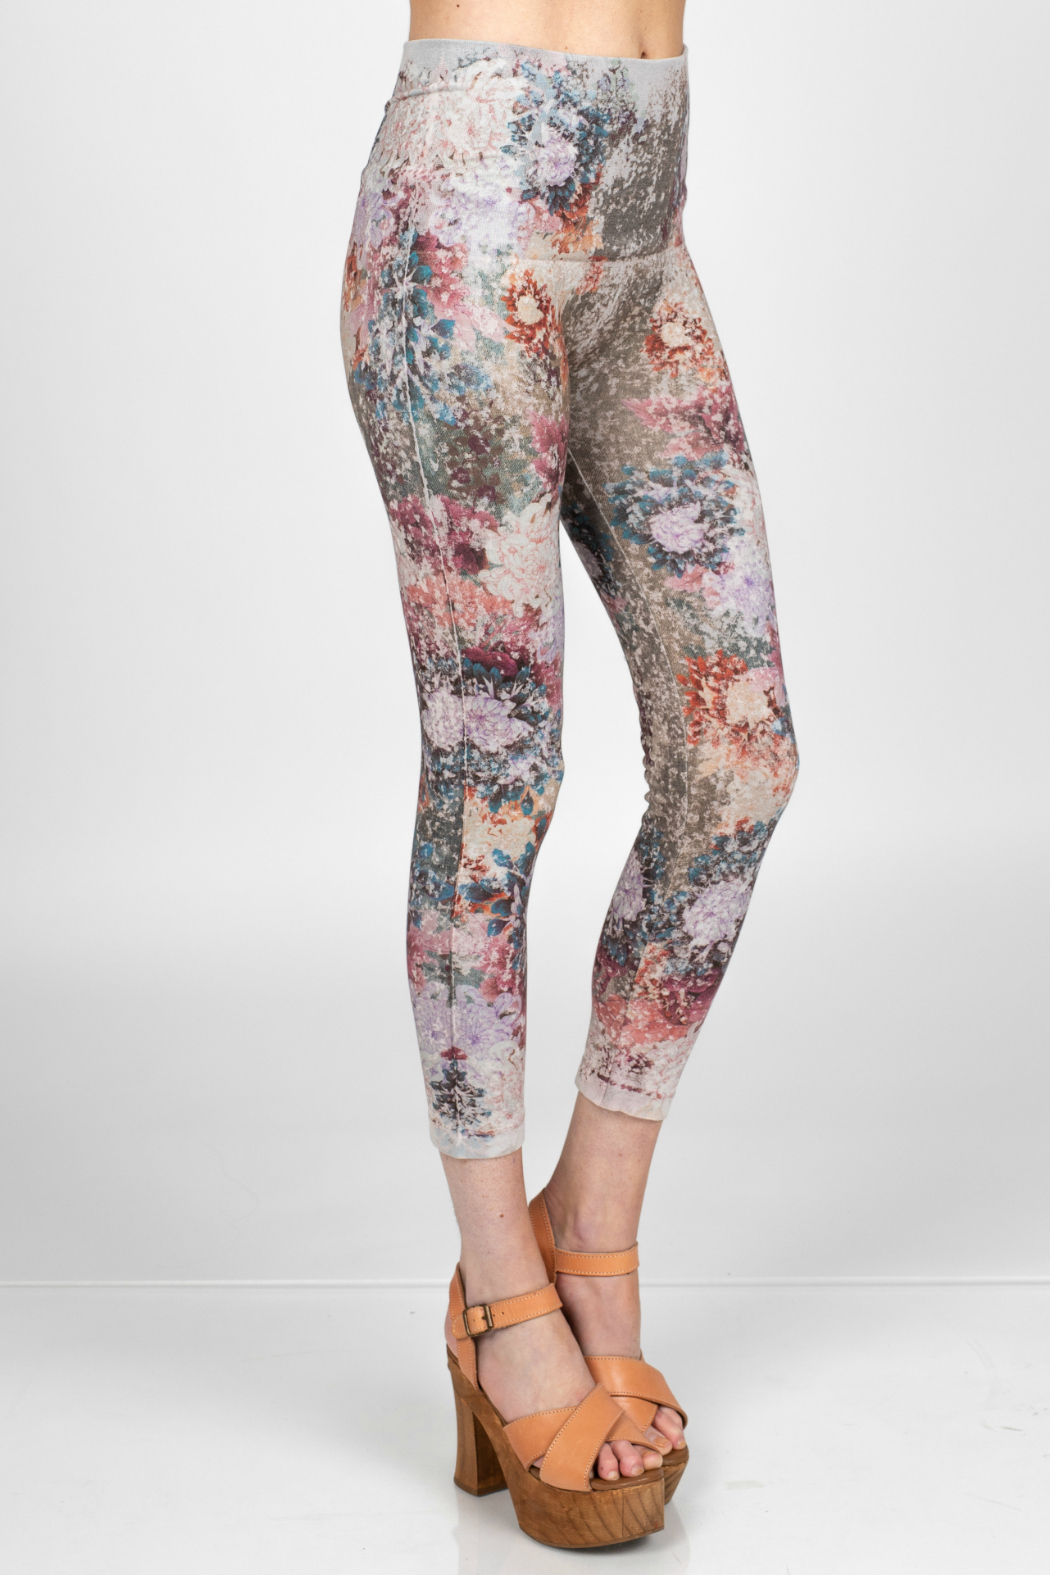 M. Rena Leggings with dancing peonies sublimation print - Front Full Image